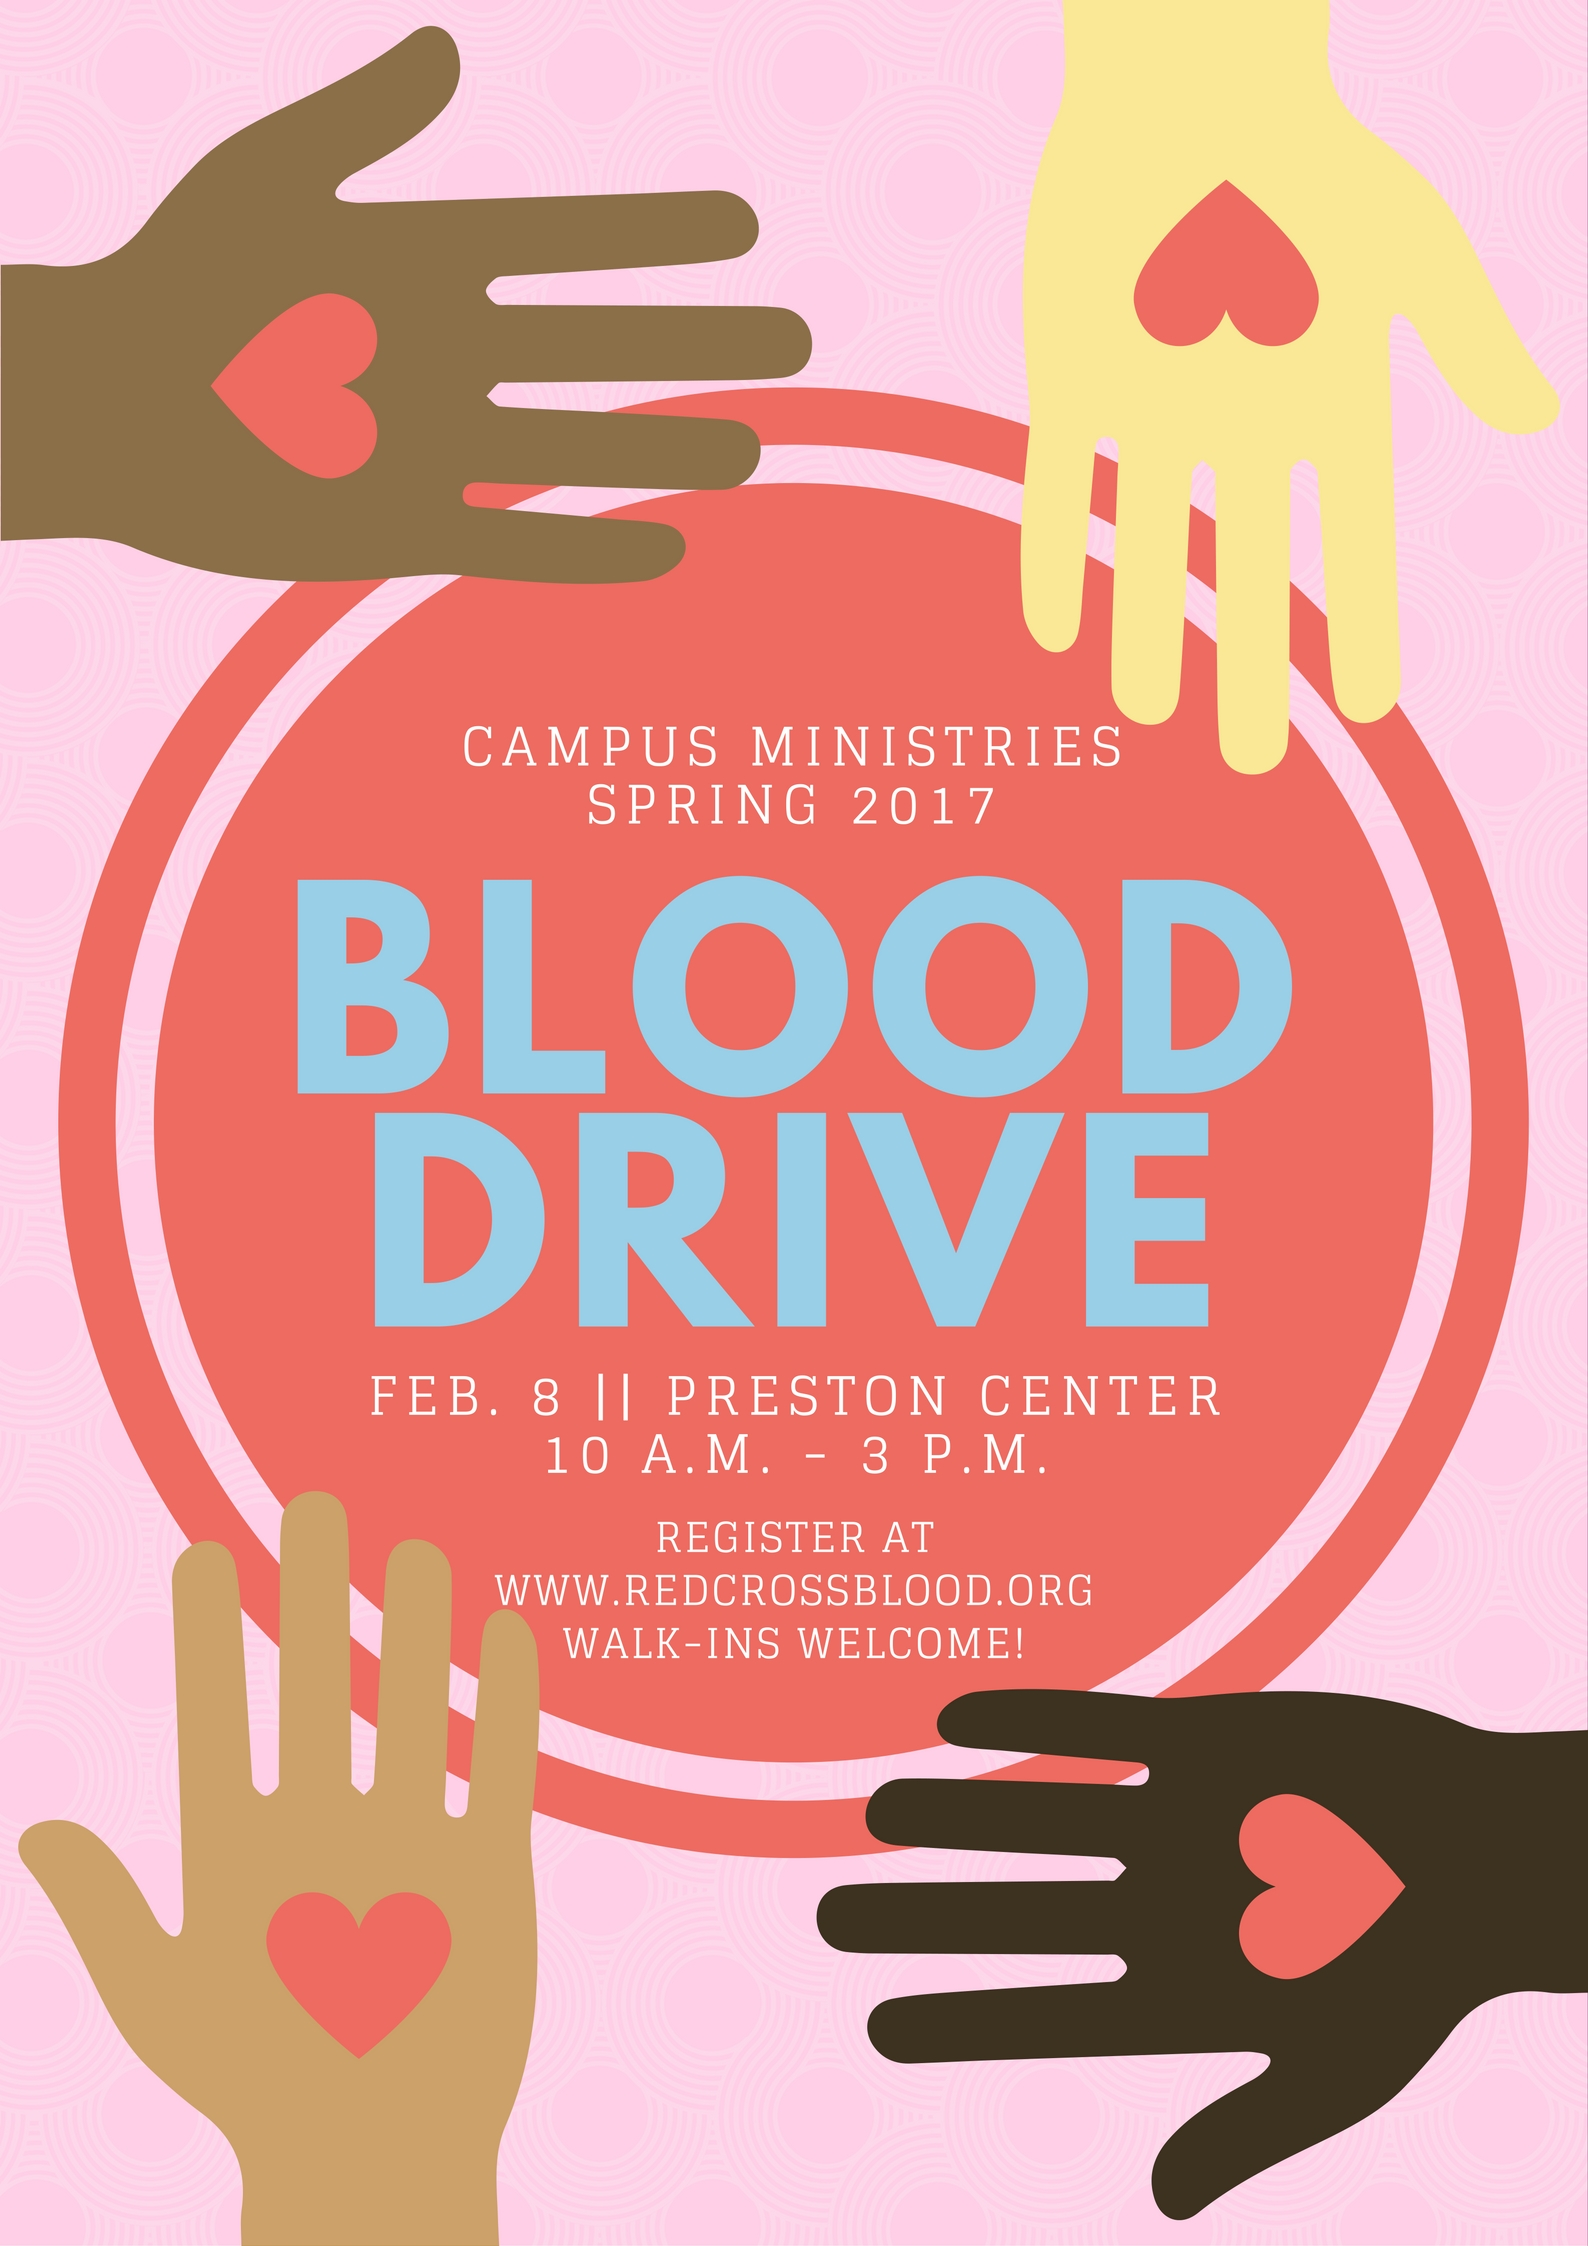 Campus Ministries Blood Drive 2017